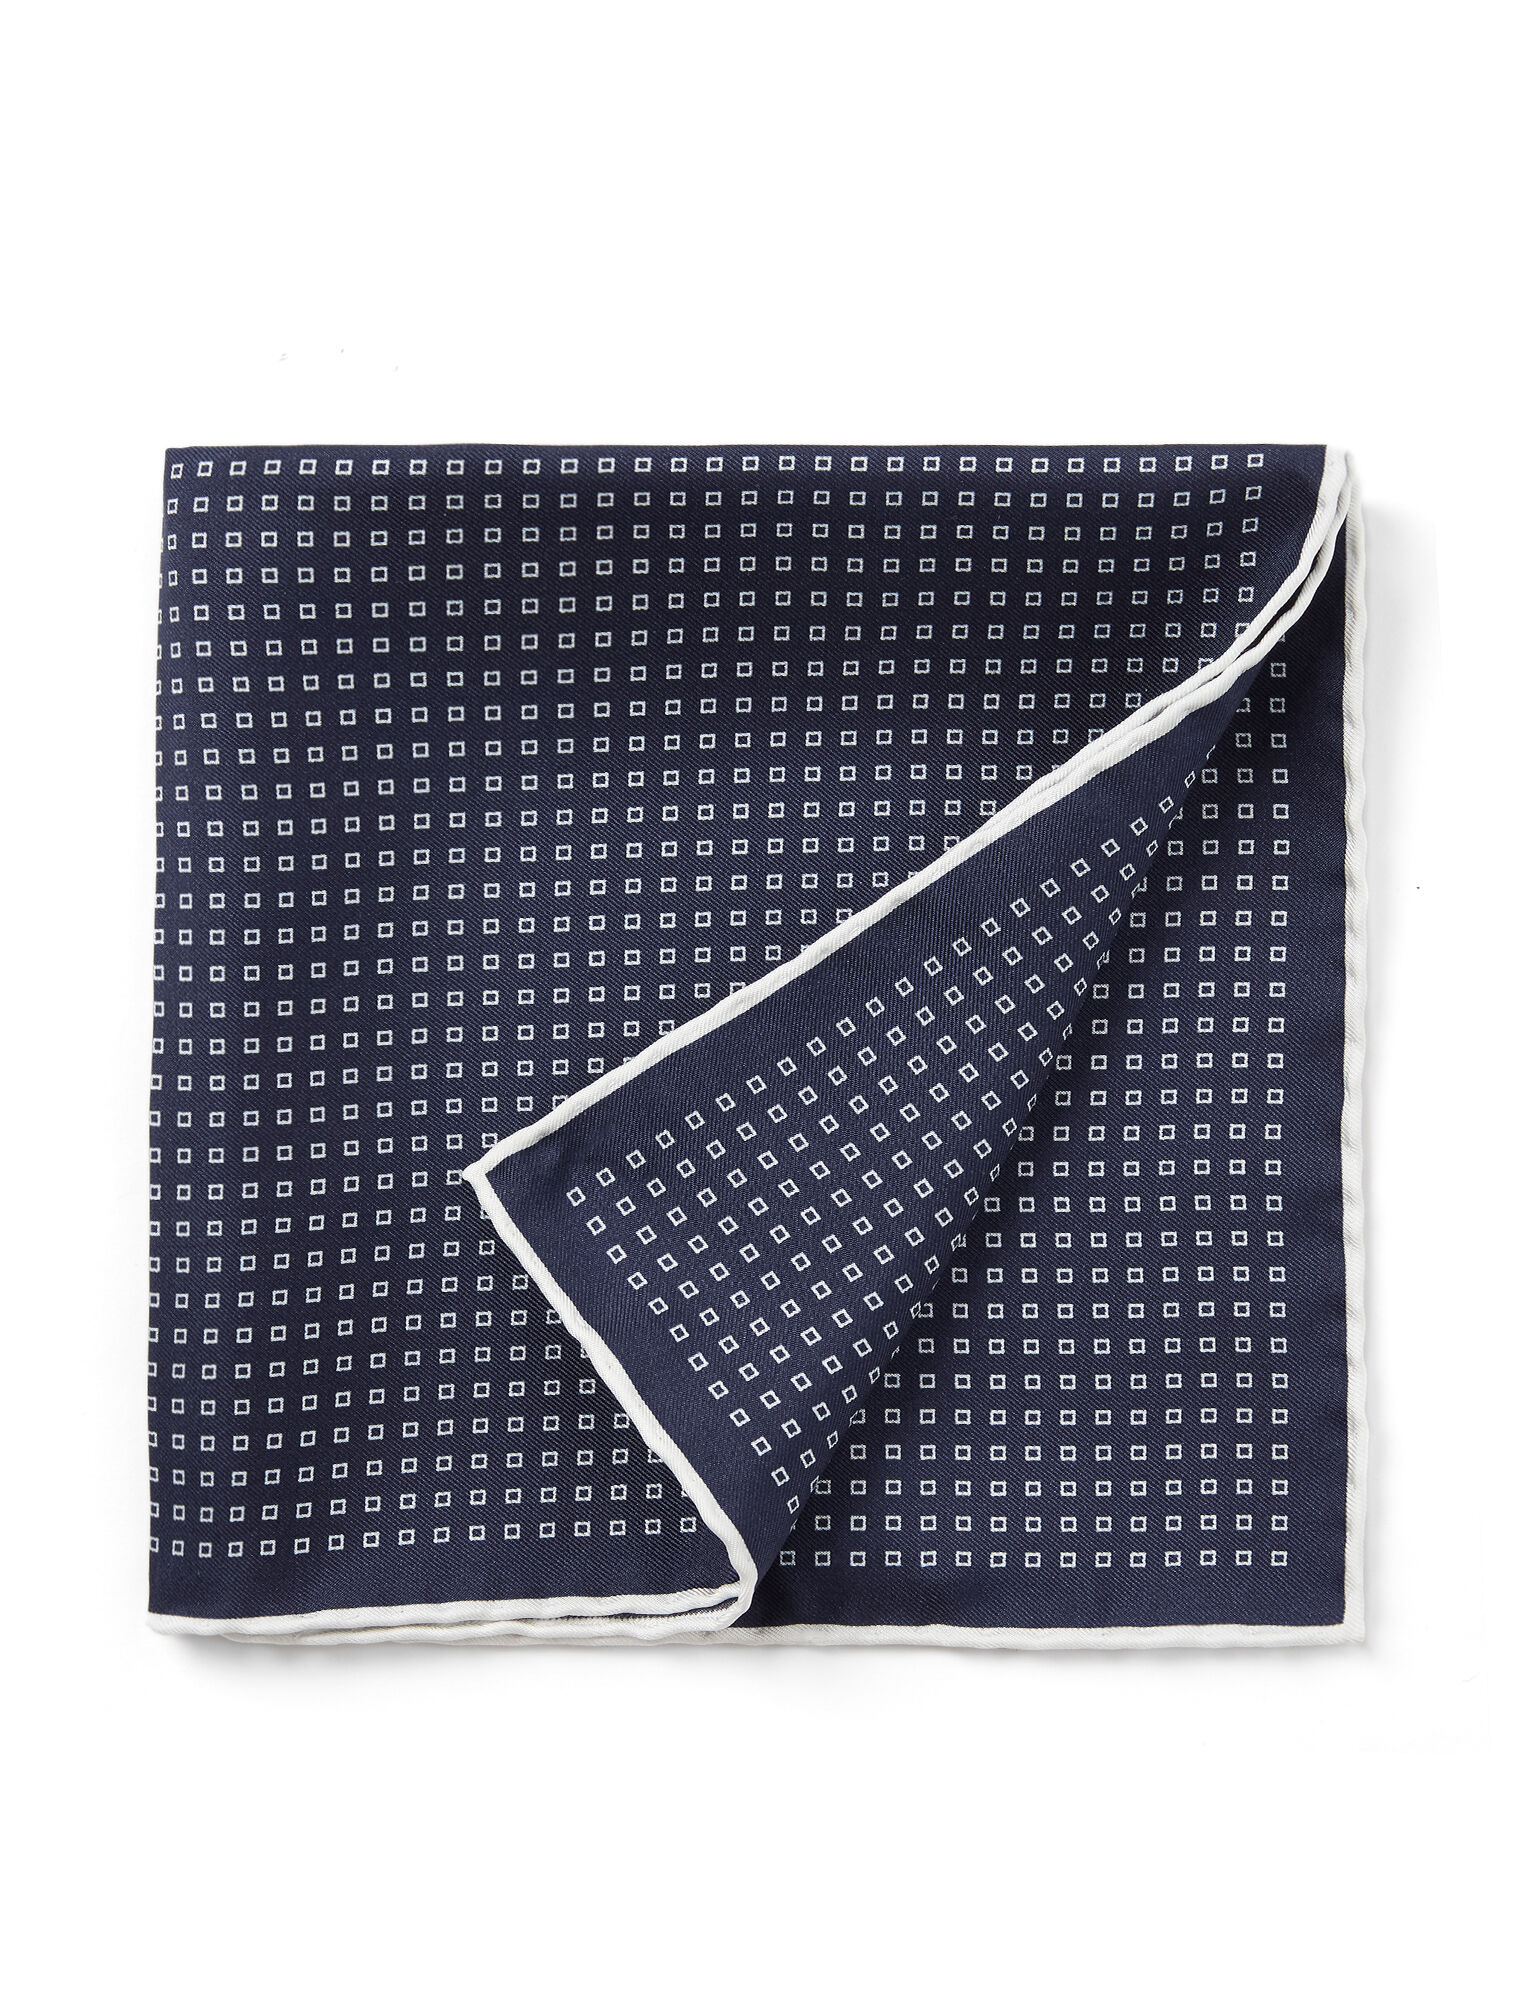 Joseph, Silked Printed Pocket Square, in NAVY